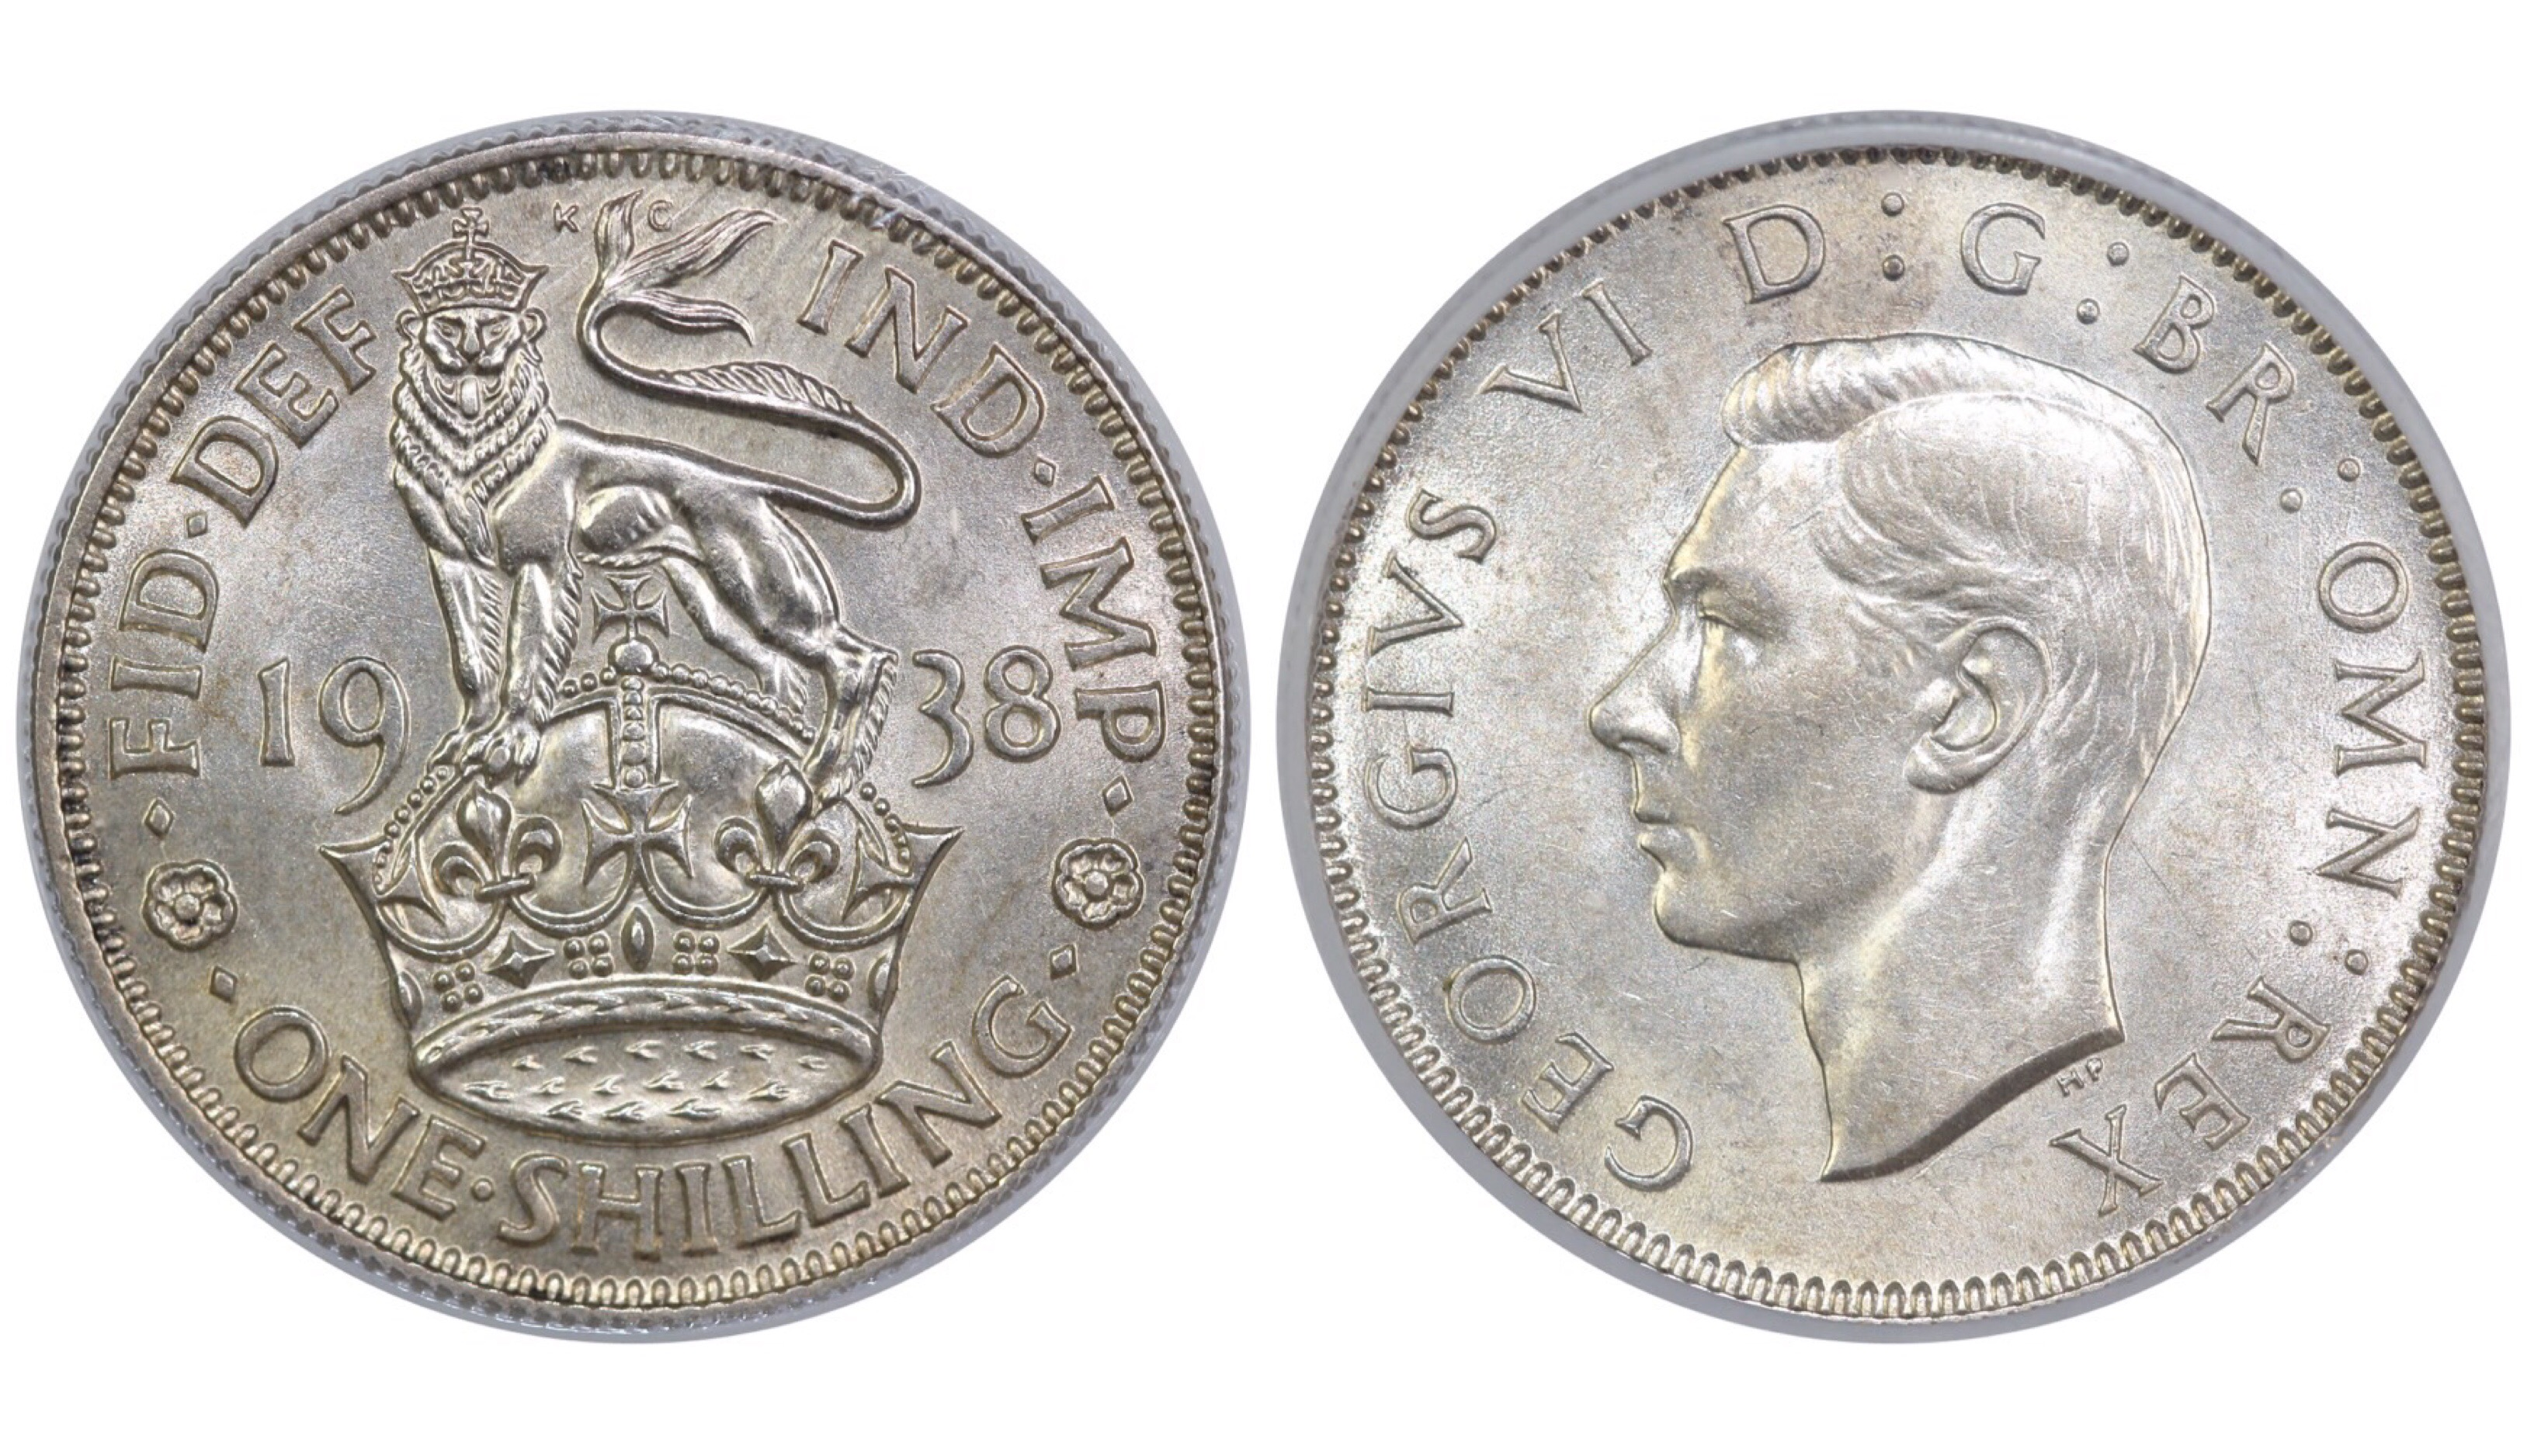 1938 'English' Shilling, CGS 78, George VI, ESC 1454, UIN 29057